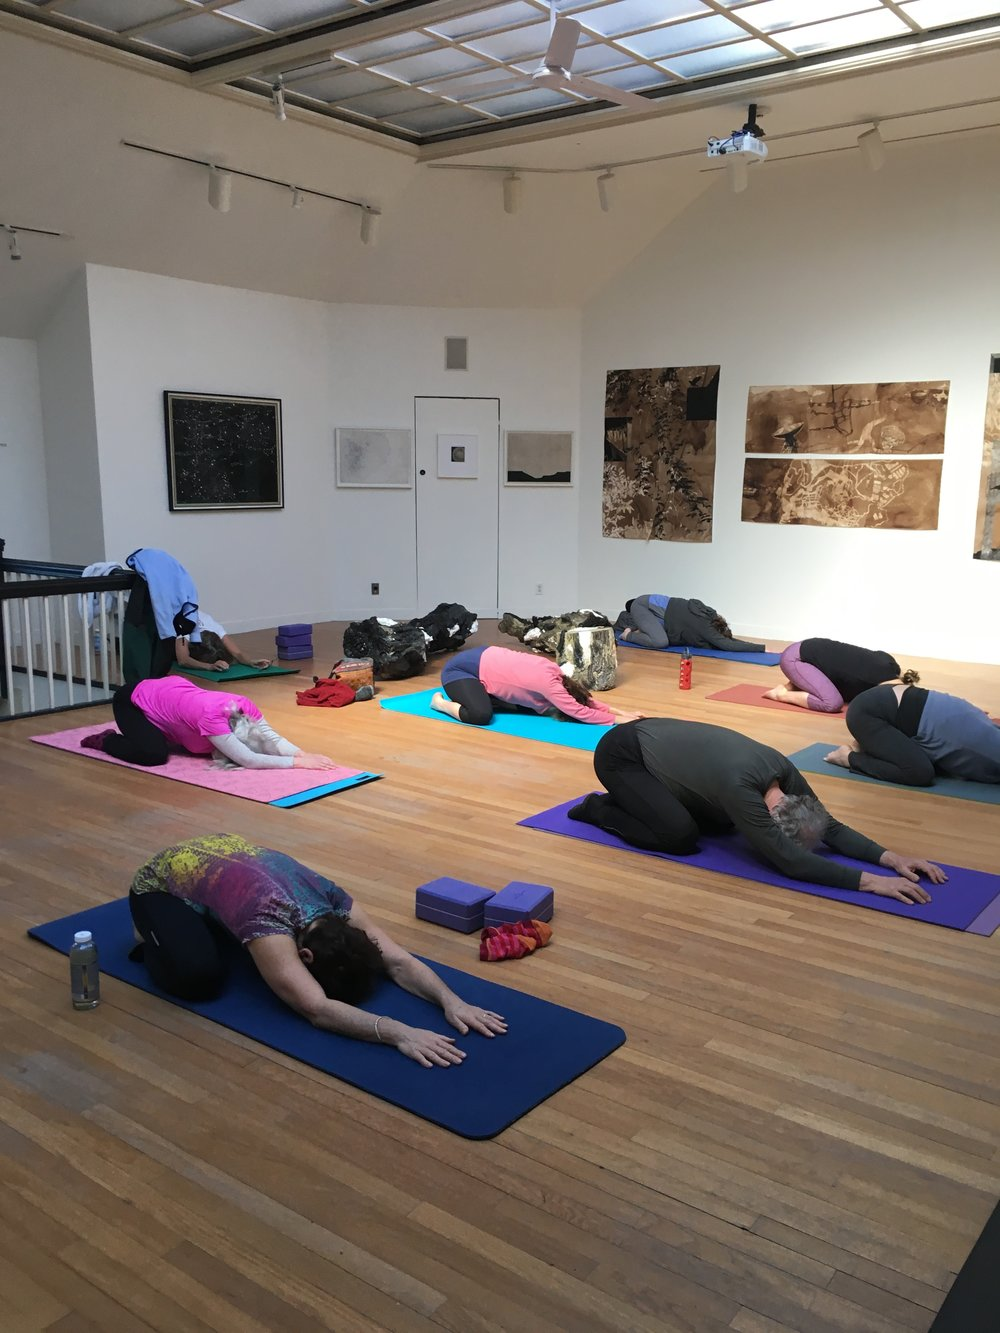 - SundayYoga outside the box9:00-10:30 amPreregister session or $20/dropinConcord Art Association